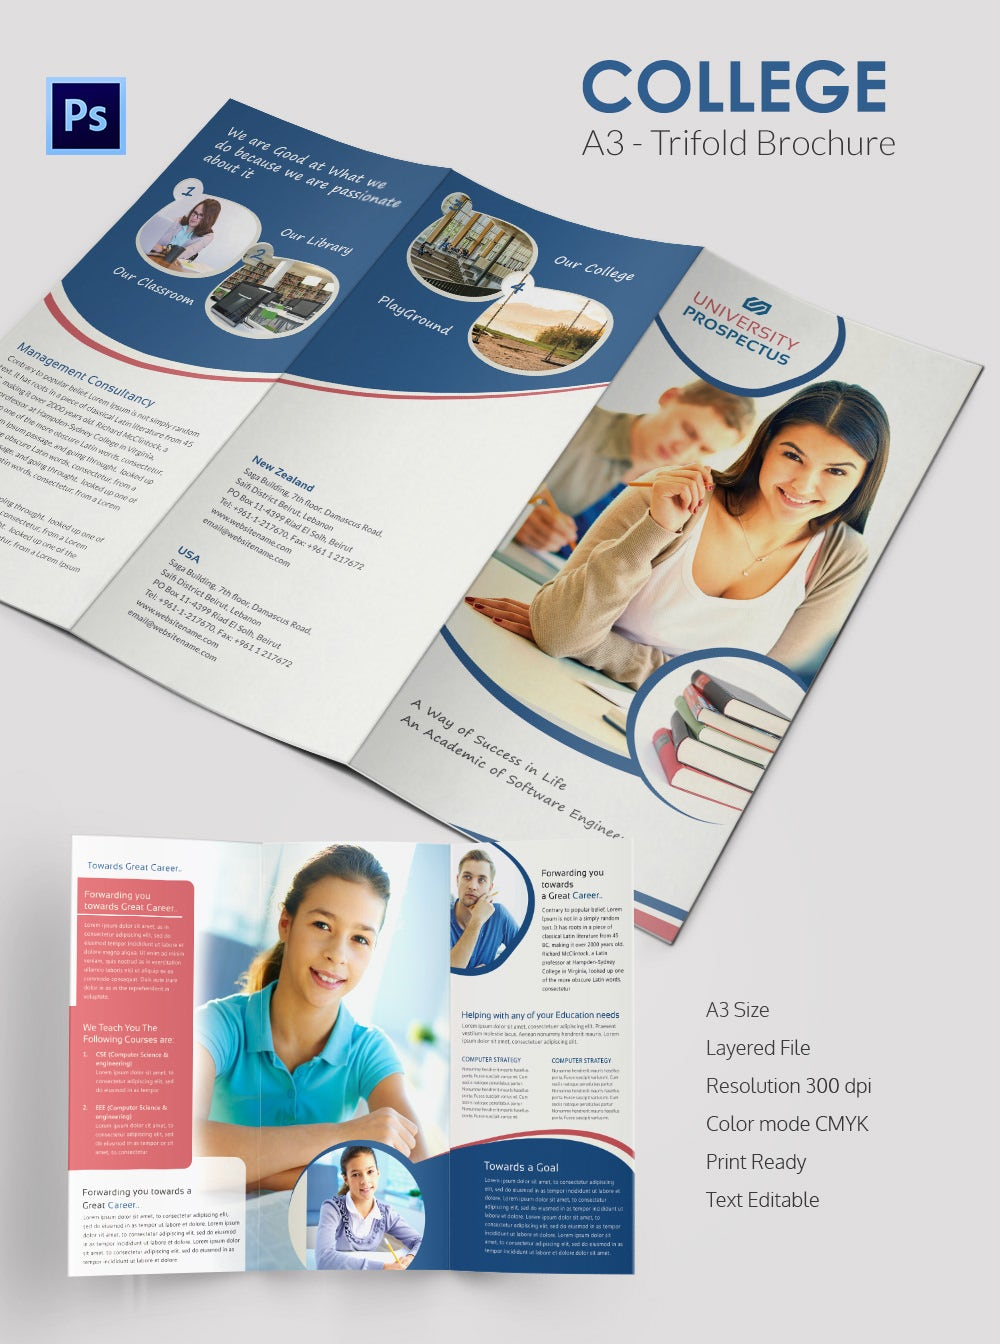 college brochure template 34 jpg psd indesign format college a3 tri fold brochure template college a3 trifold brochure